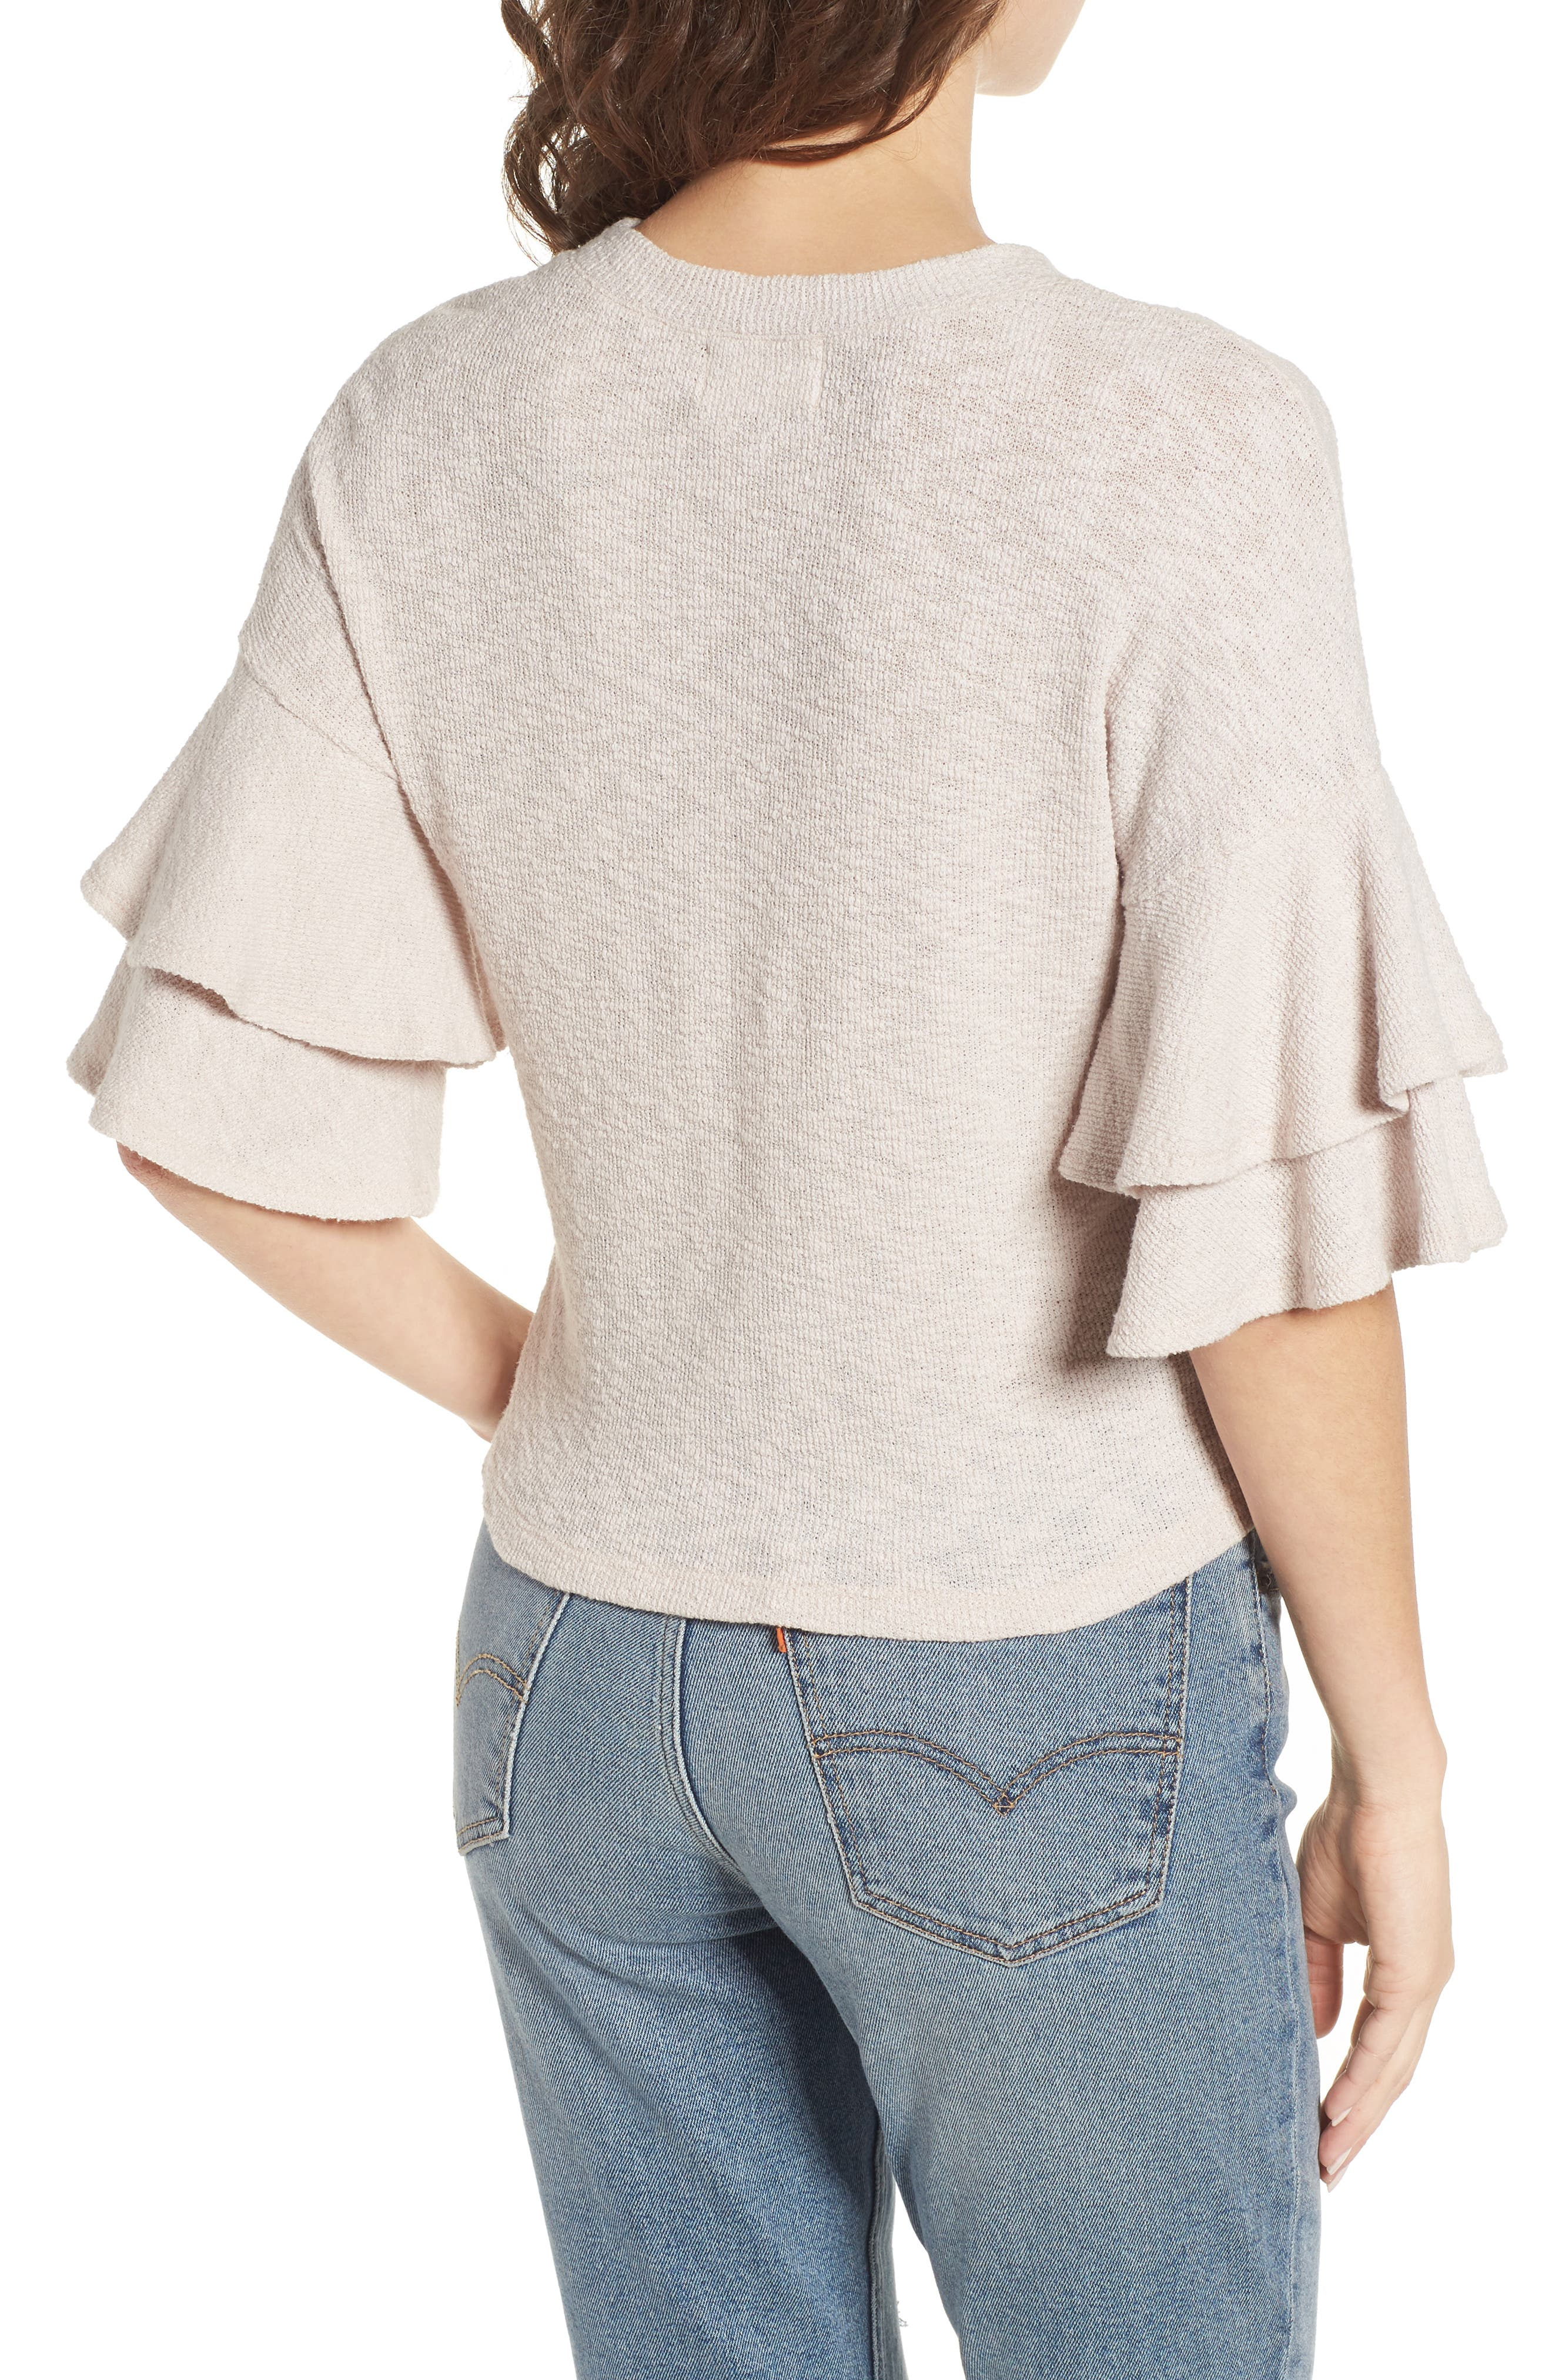 Cherry Blossom Ruffle Sleeve Top,                             Alternate thumbnail 3, color,                             Pale Pink